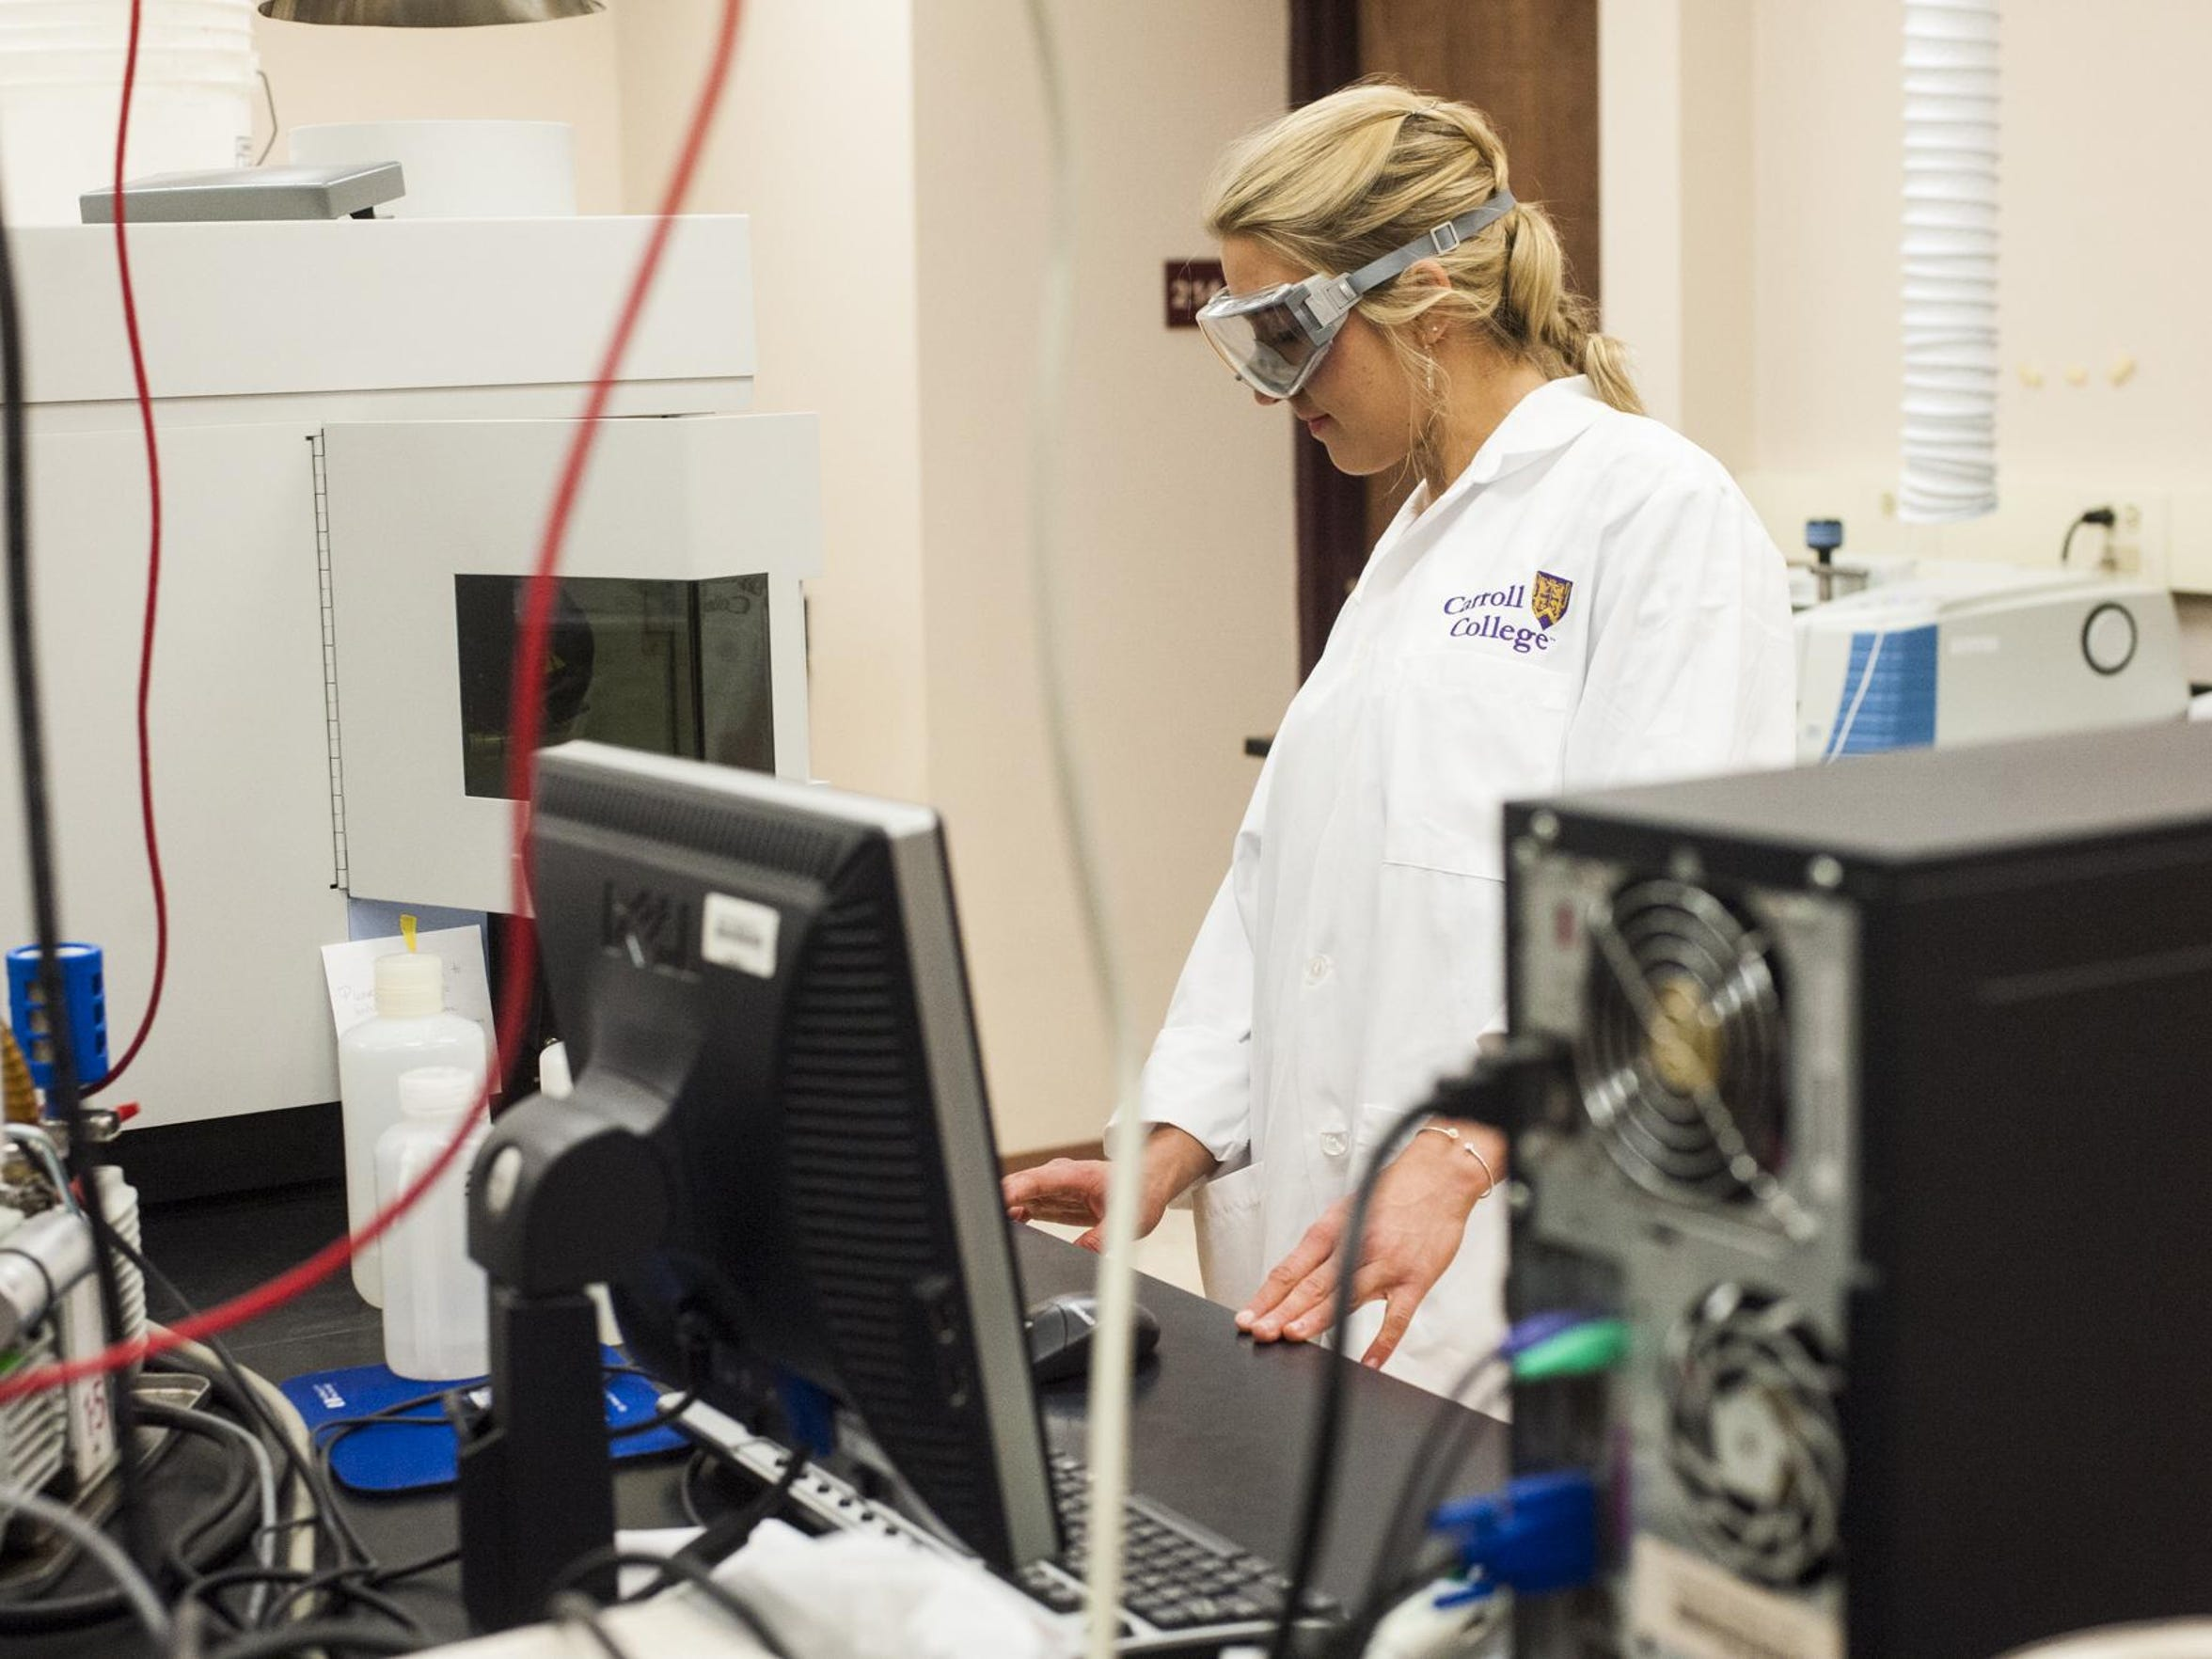 Lauren Rhoda completes a lab assignment as part of her major in chemistry at Carroll College on March 23.